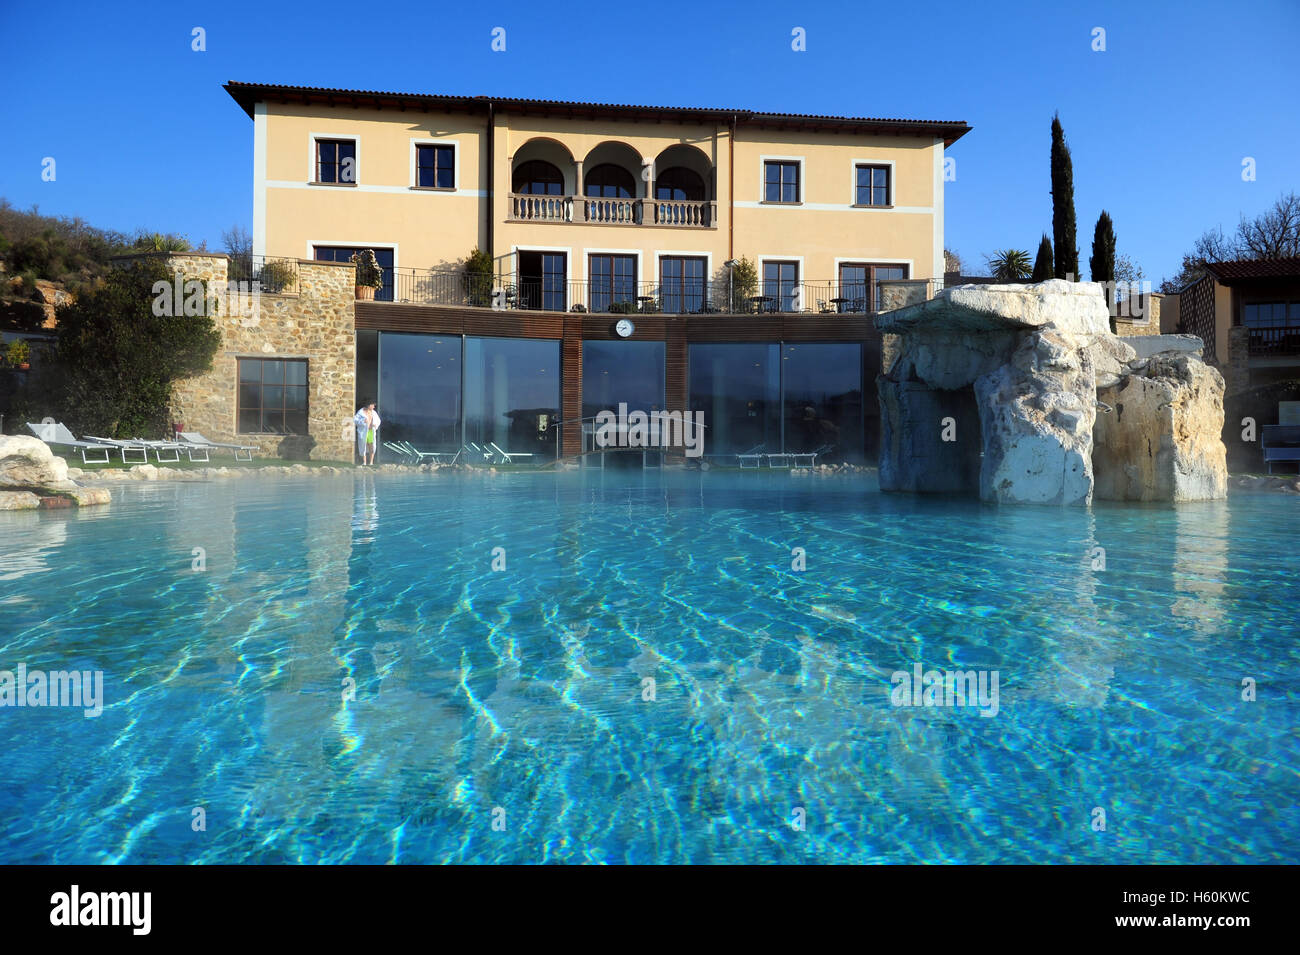 Thermae hotel stock photos thermae hotel stock images alamy - Adler bagno vignoni ...